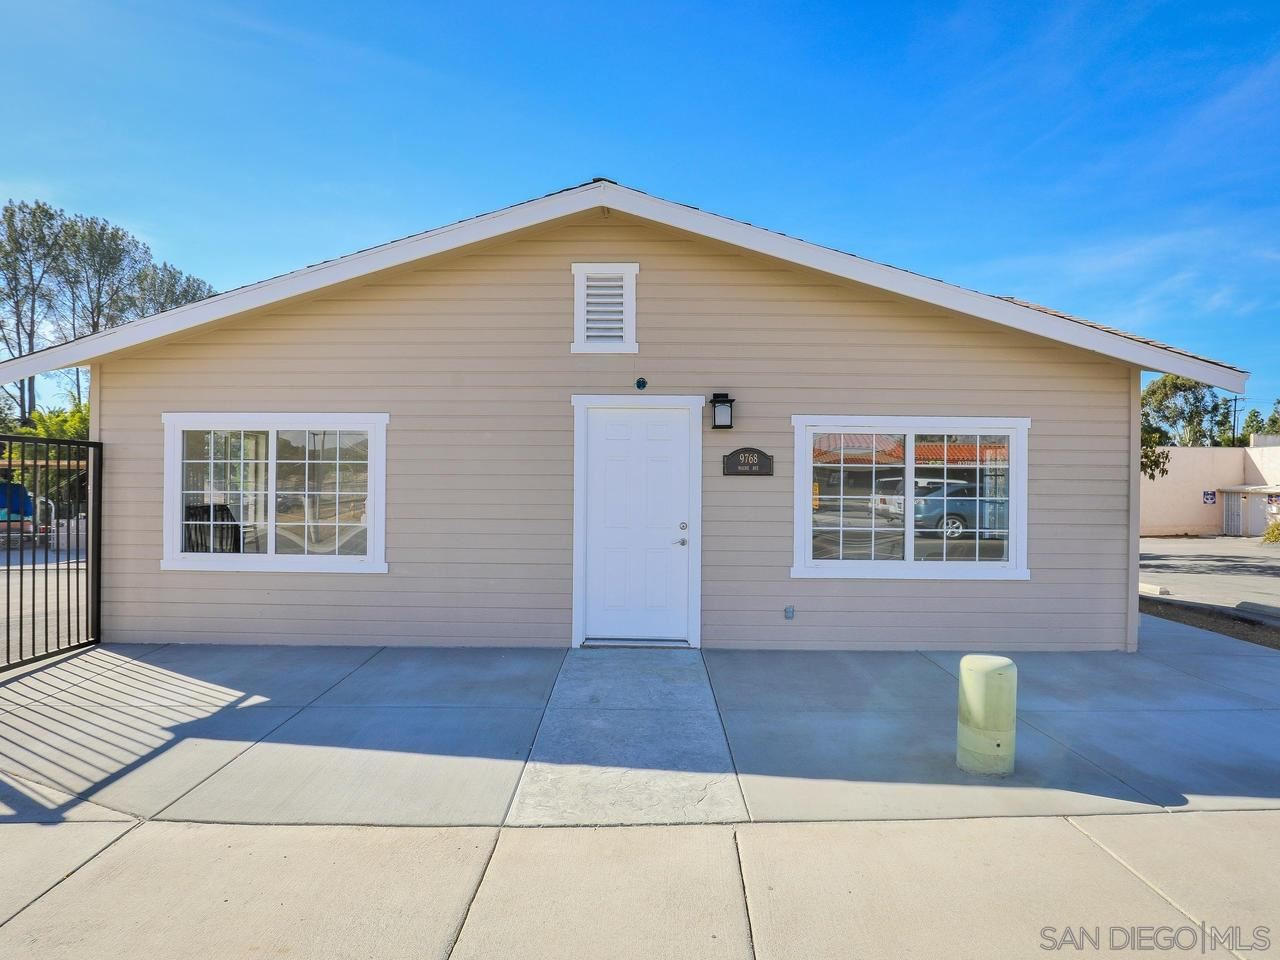 Photo of 9768 Maine Ave, Lakeside, CA 92040 (MLS # 210008950)